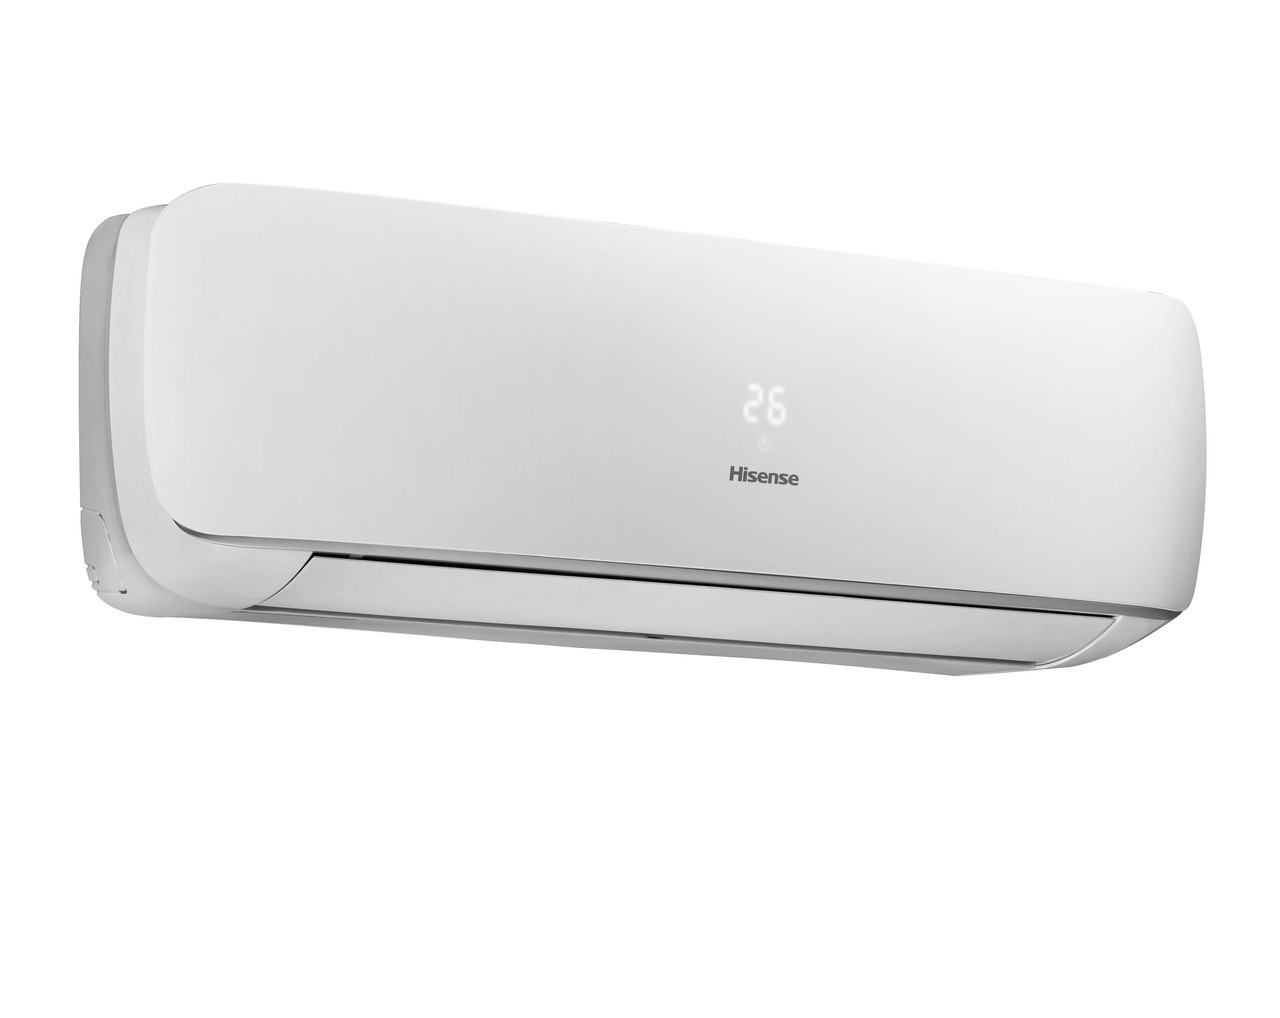 Кондиционер Hisense AST-12UW4SVETG10 Apple Pie Super DC Inverter (35 м.кв.)